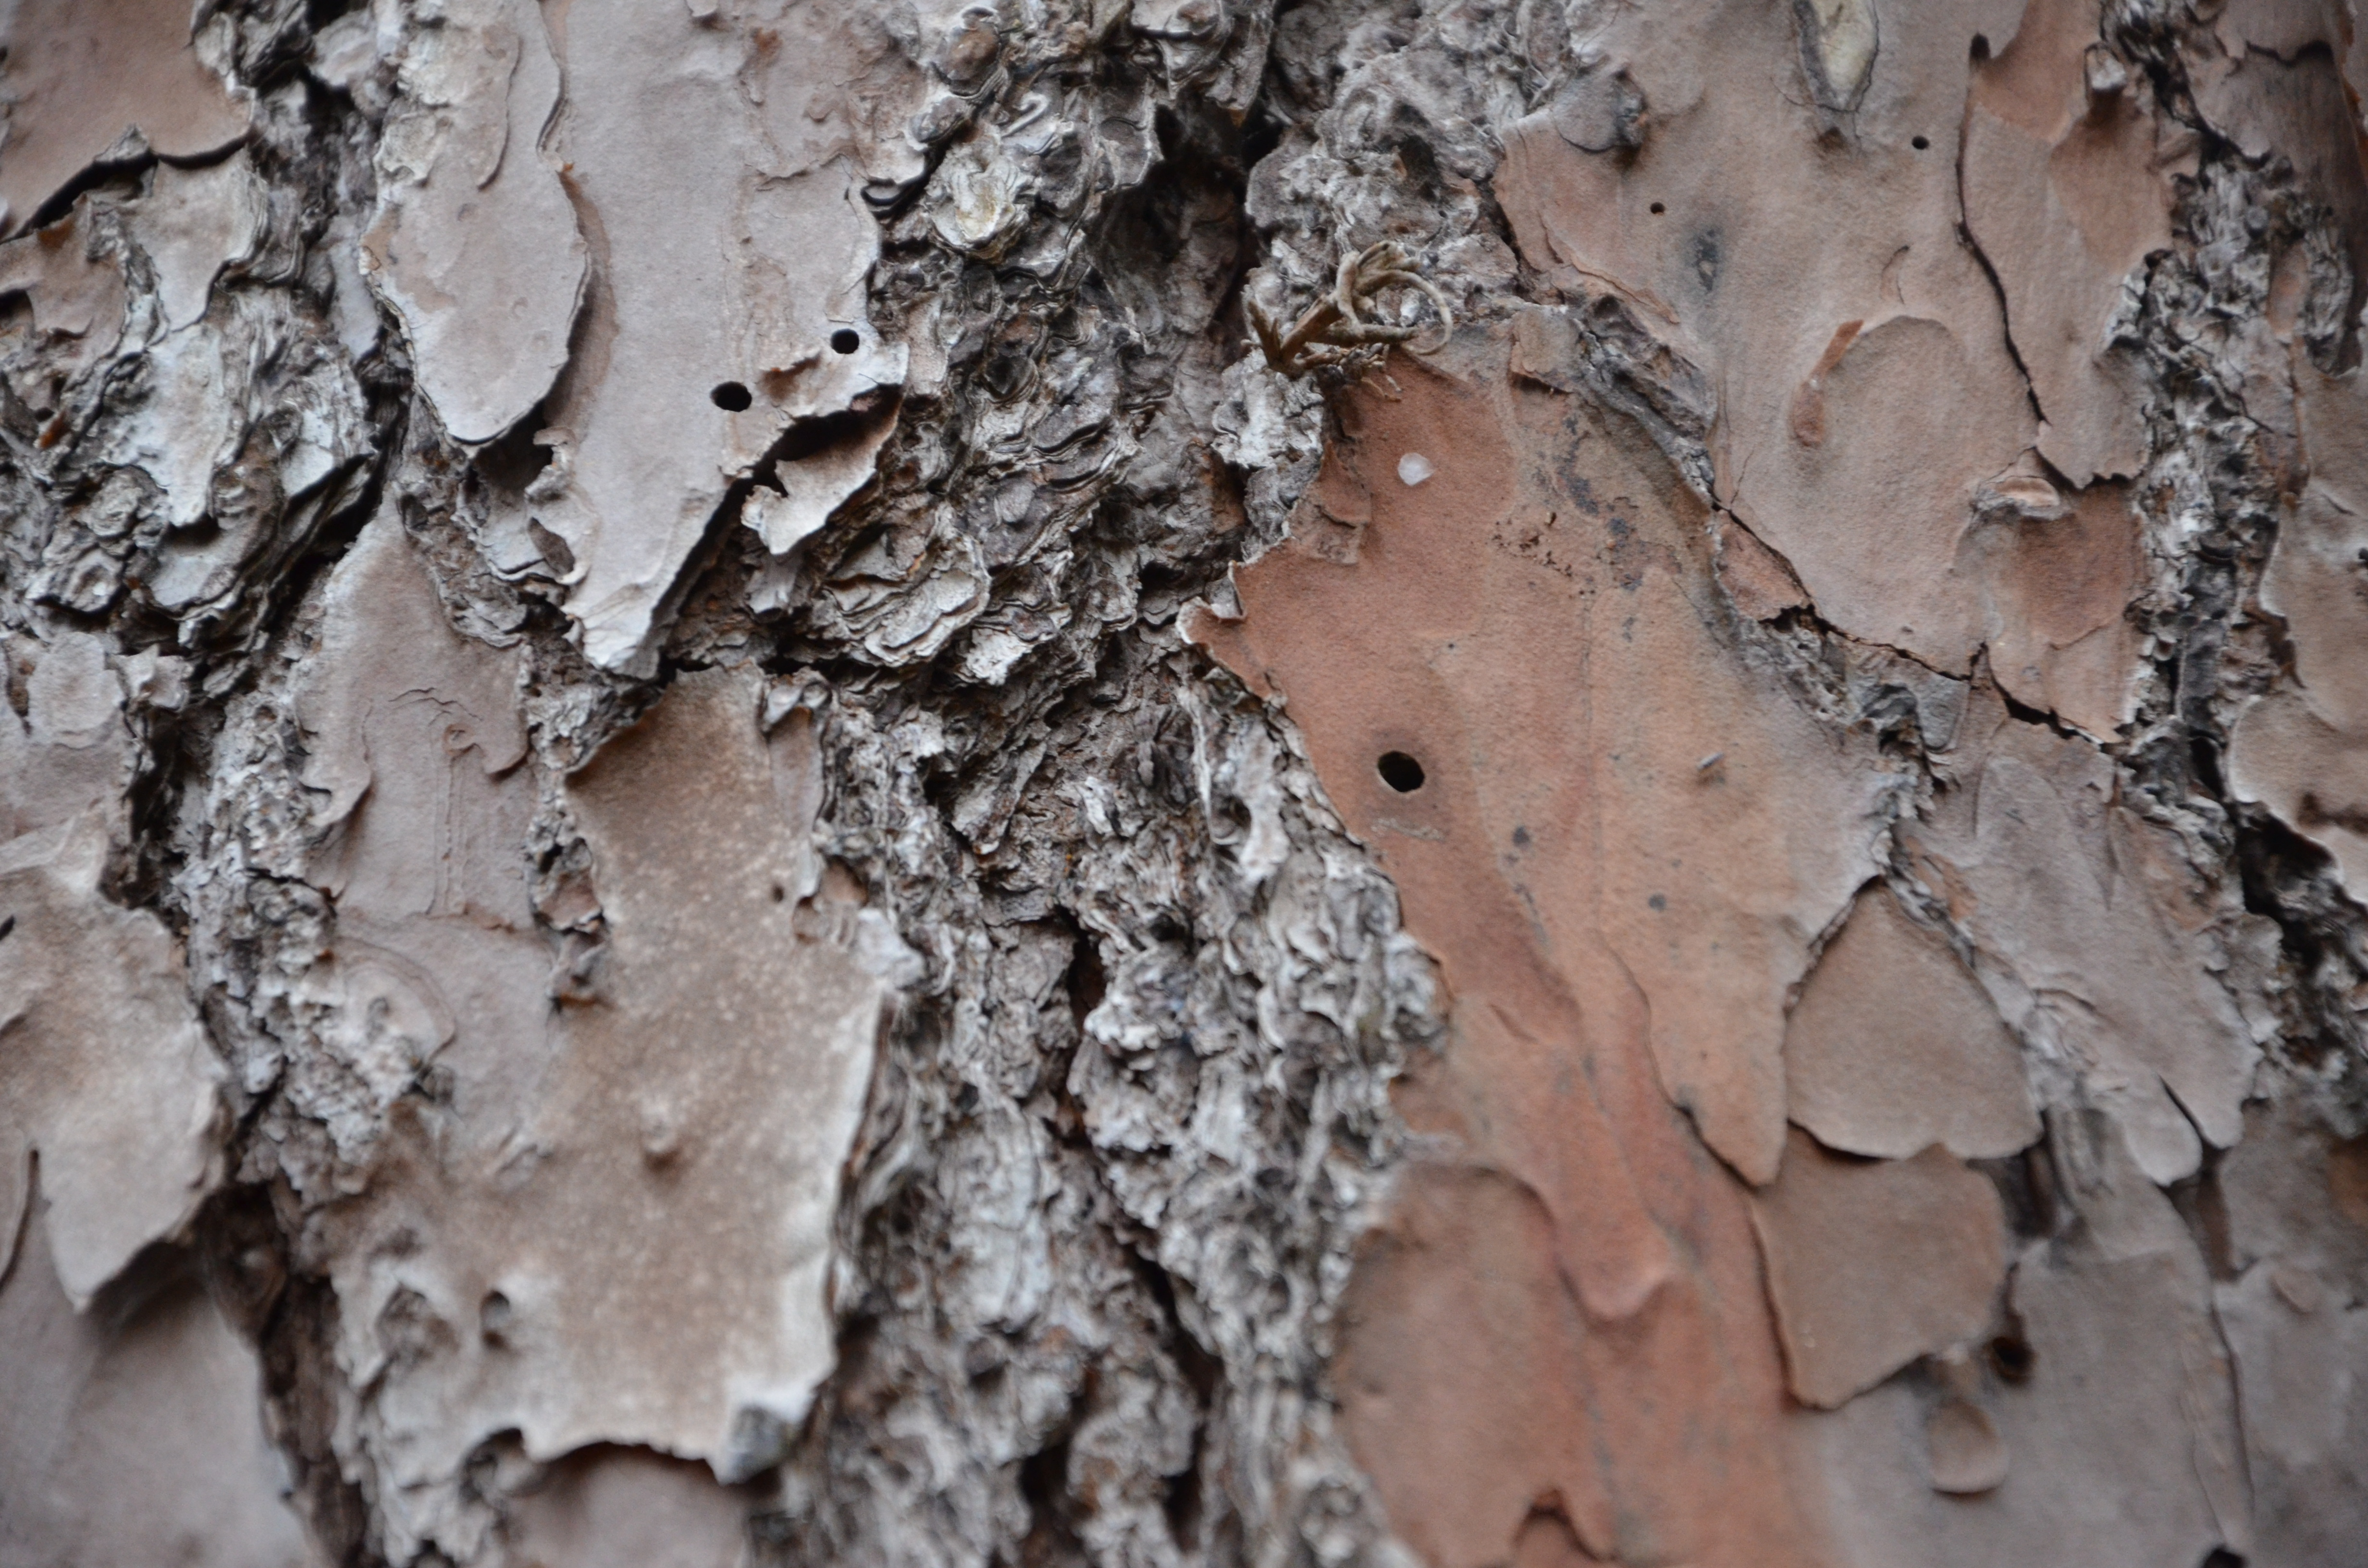 A hidden spider in the bark of a tree.